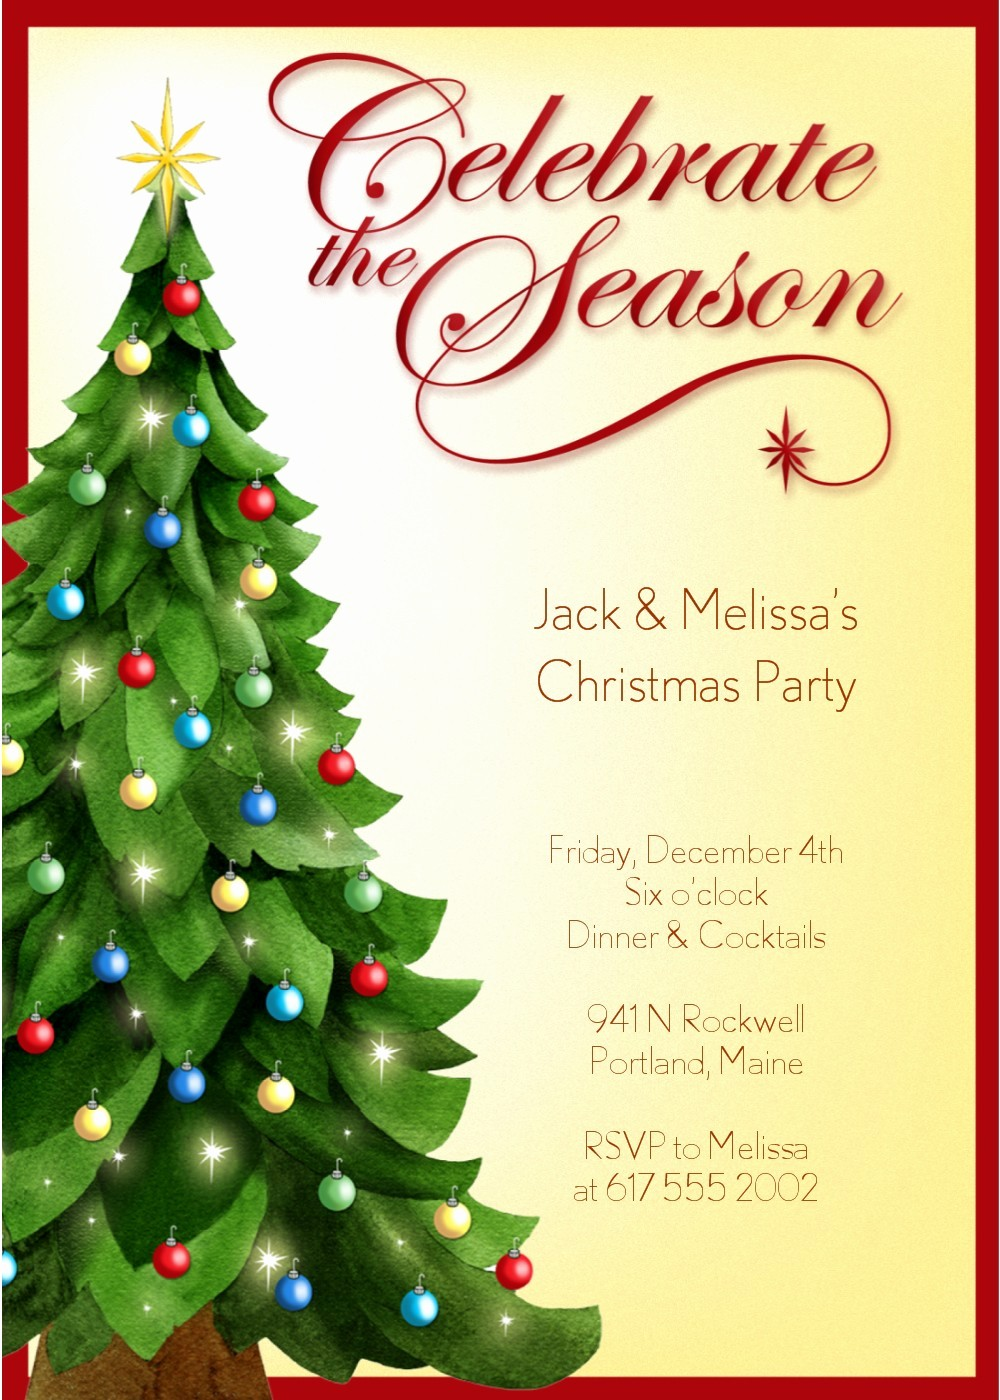 Holiday Party Invitations Template Word Inspirational Christmas Party Invitation Templates Free Word